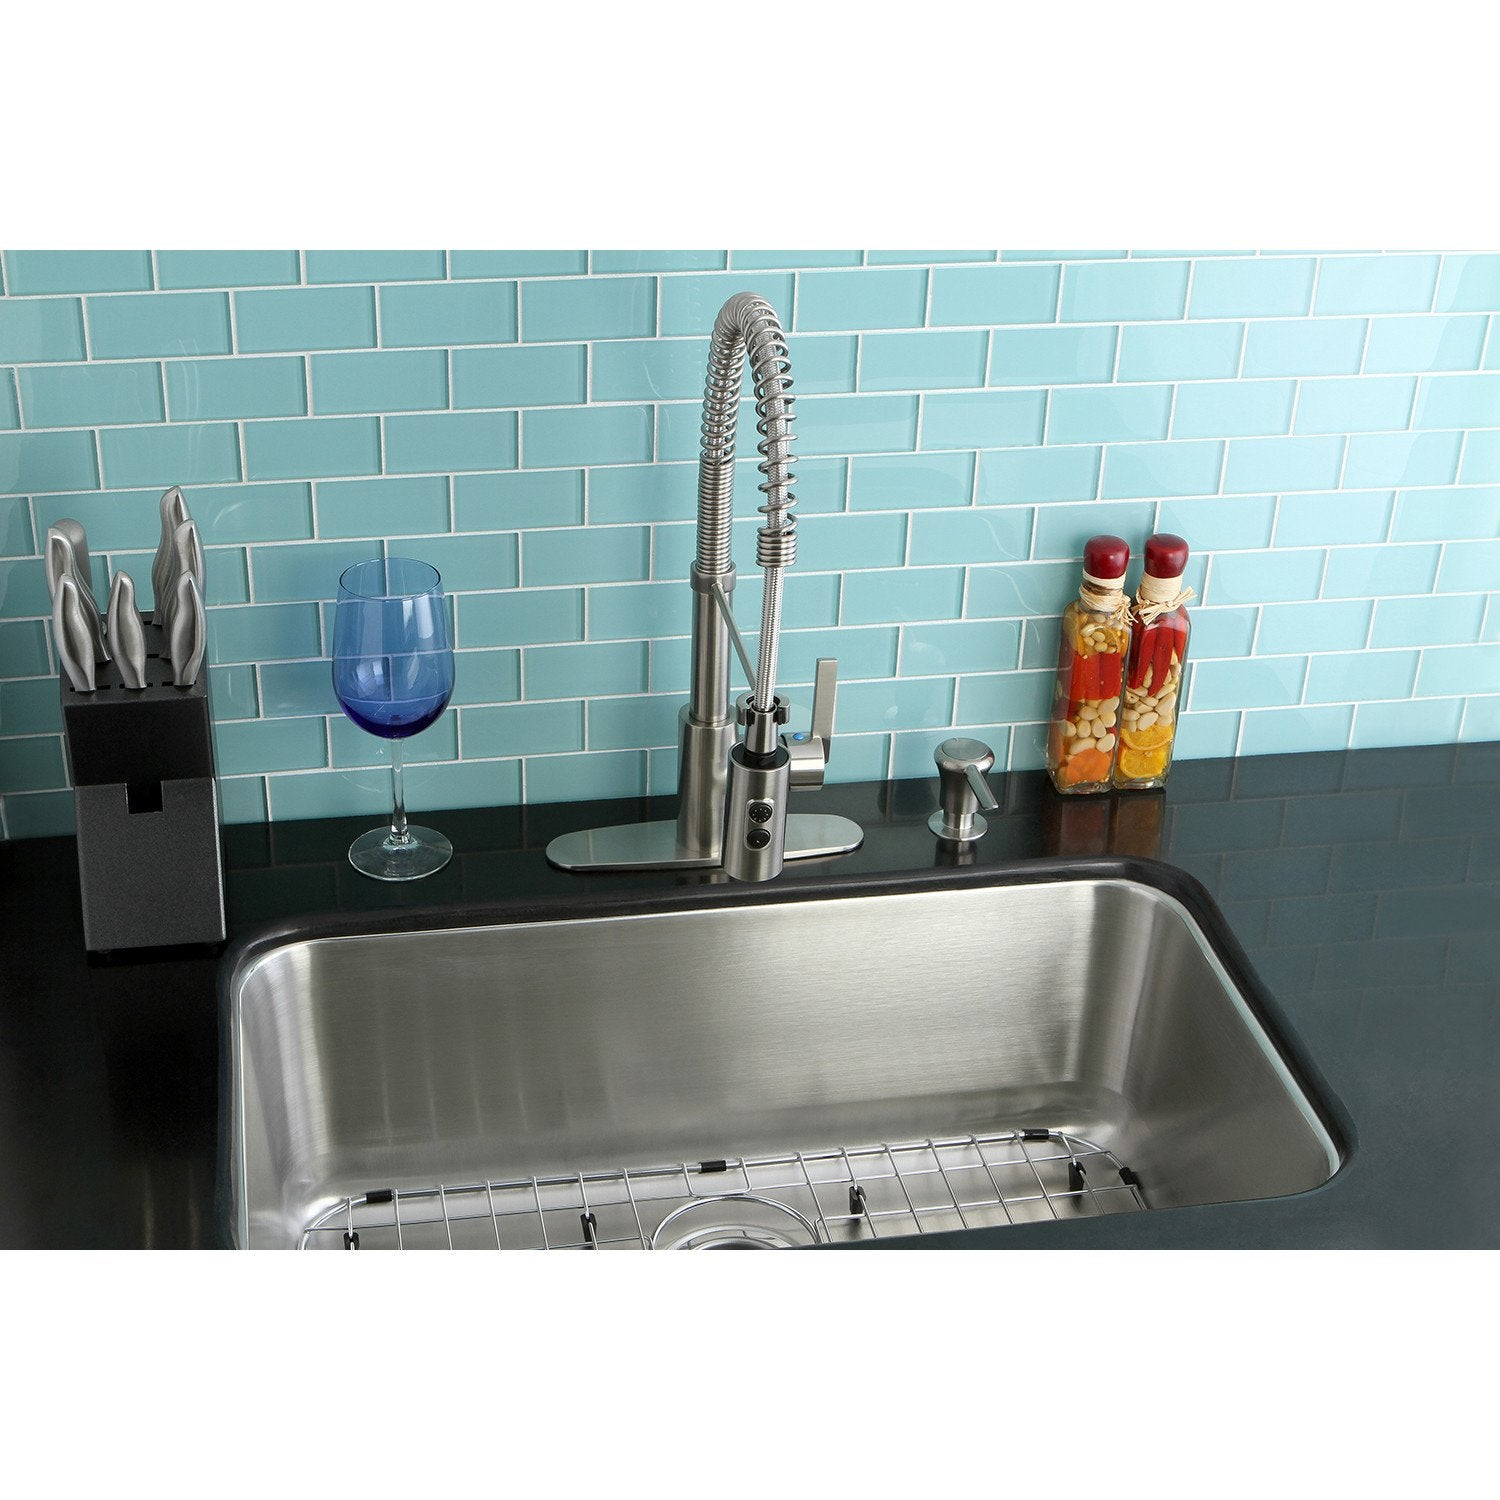 Undermount 1 Bowl Kitchen Sink Combo w/ Faucet, Strainer, Grid ...